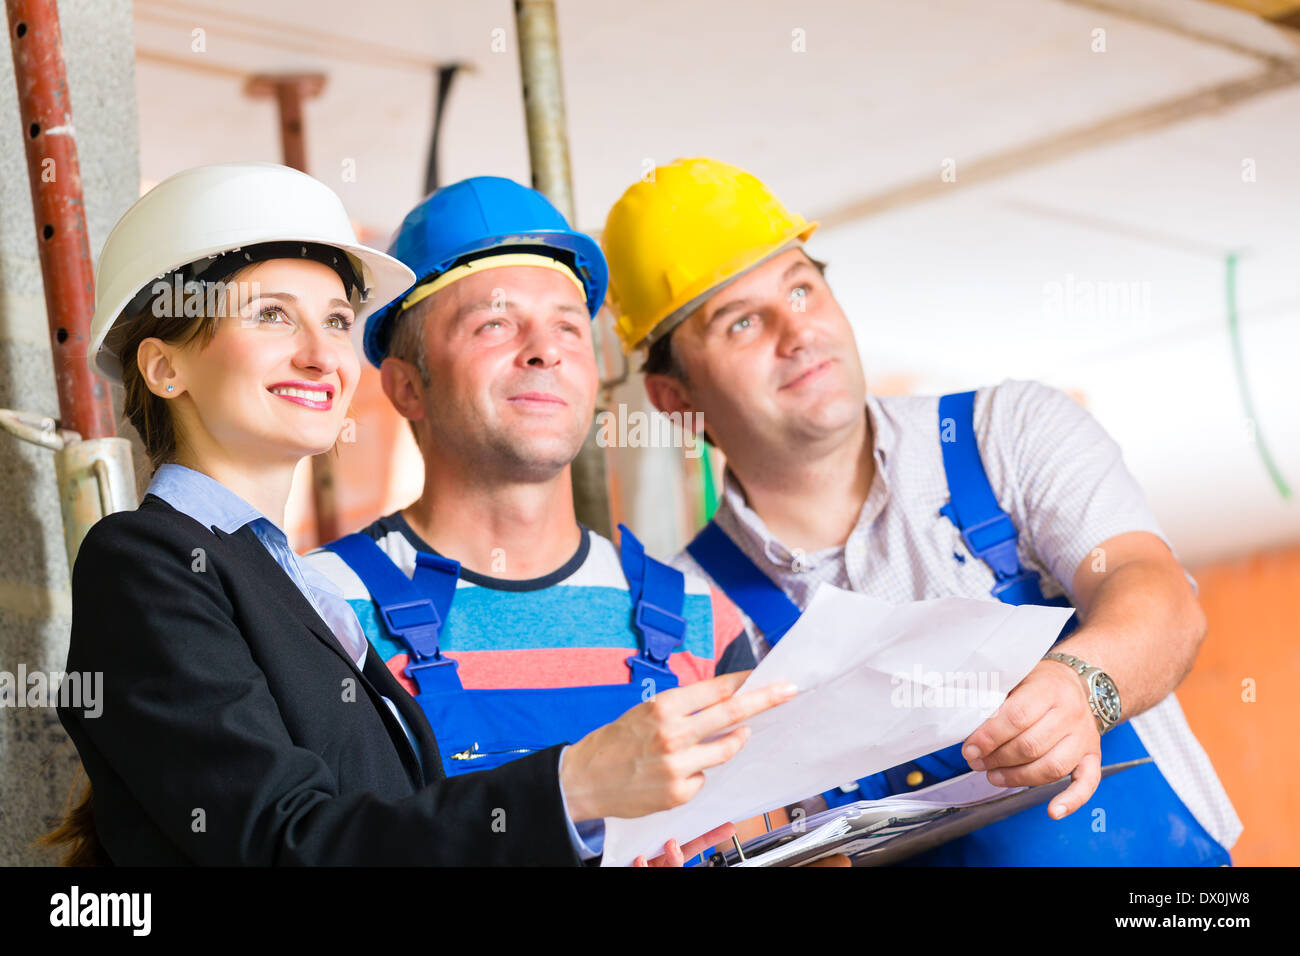 Charming Construction Site Team Or Architect And Builder Or Worker With Helmets  Controlling Or Having Discussion Of Plan Or Blueprint